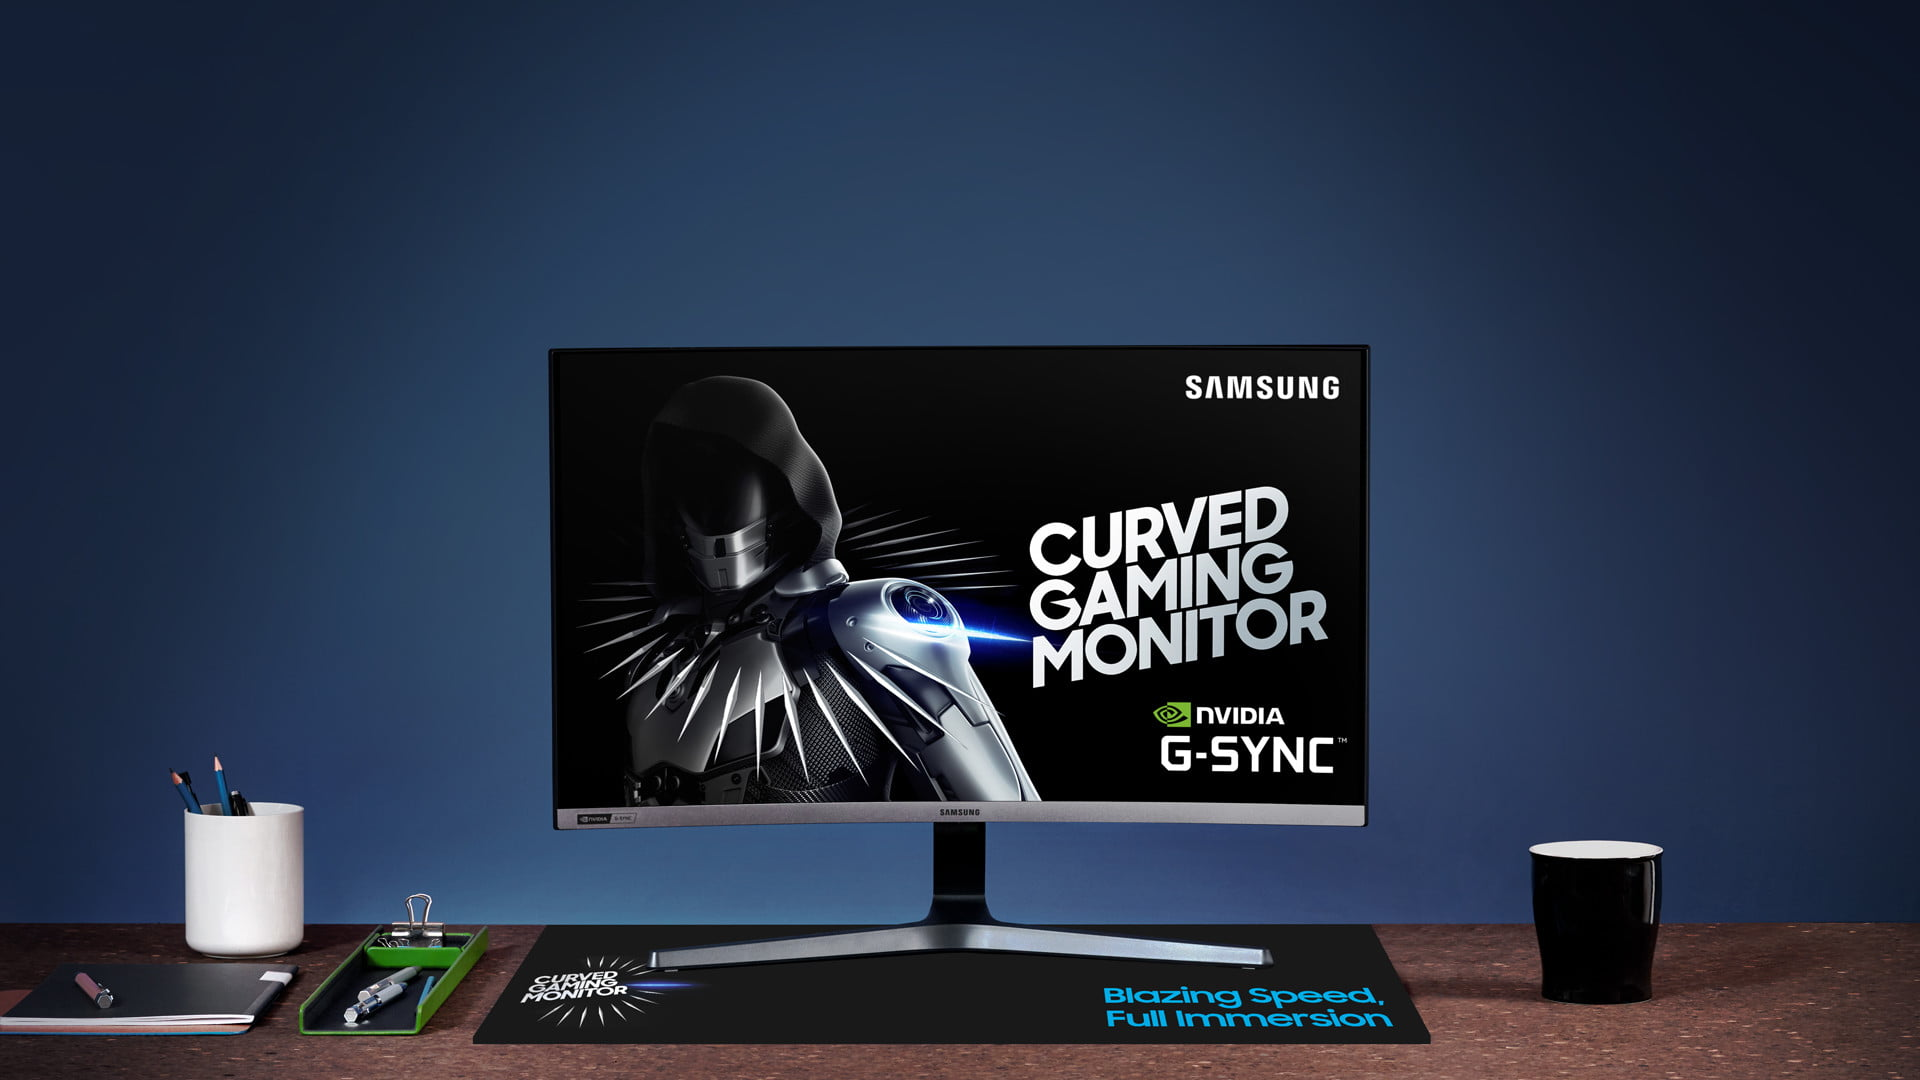 samsung-curved-gaming-monitor-crg527_1-1920×1080